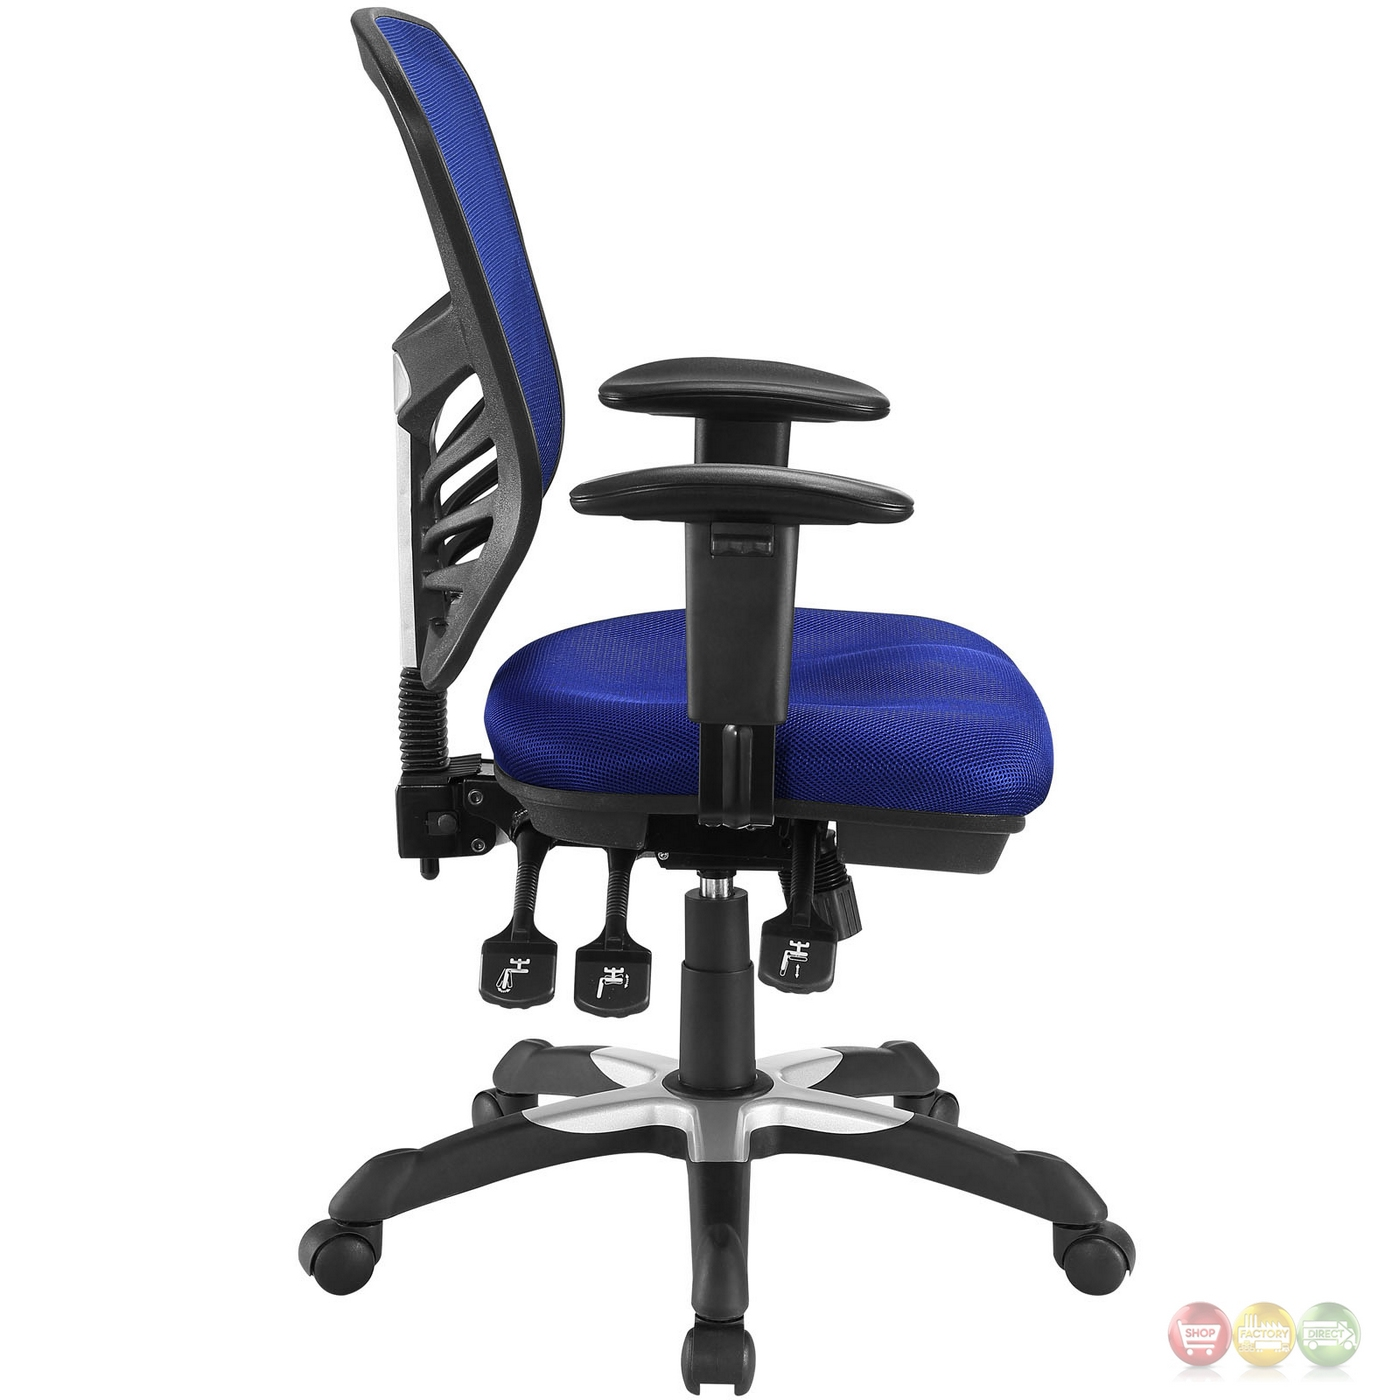 Articulate modern adjustable ergonomic mesh office chair blue for Blue office chair